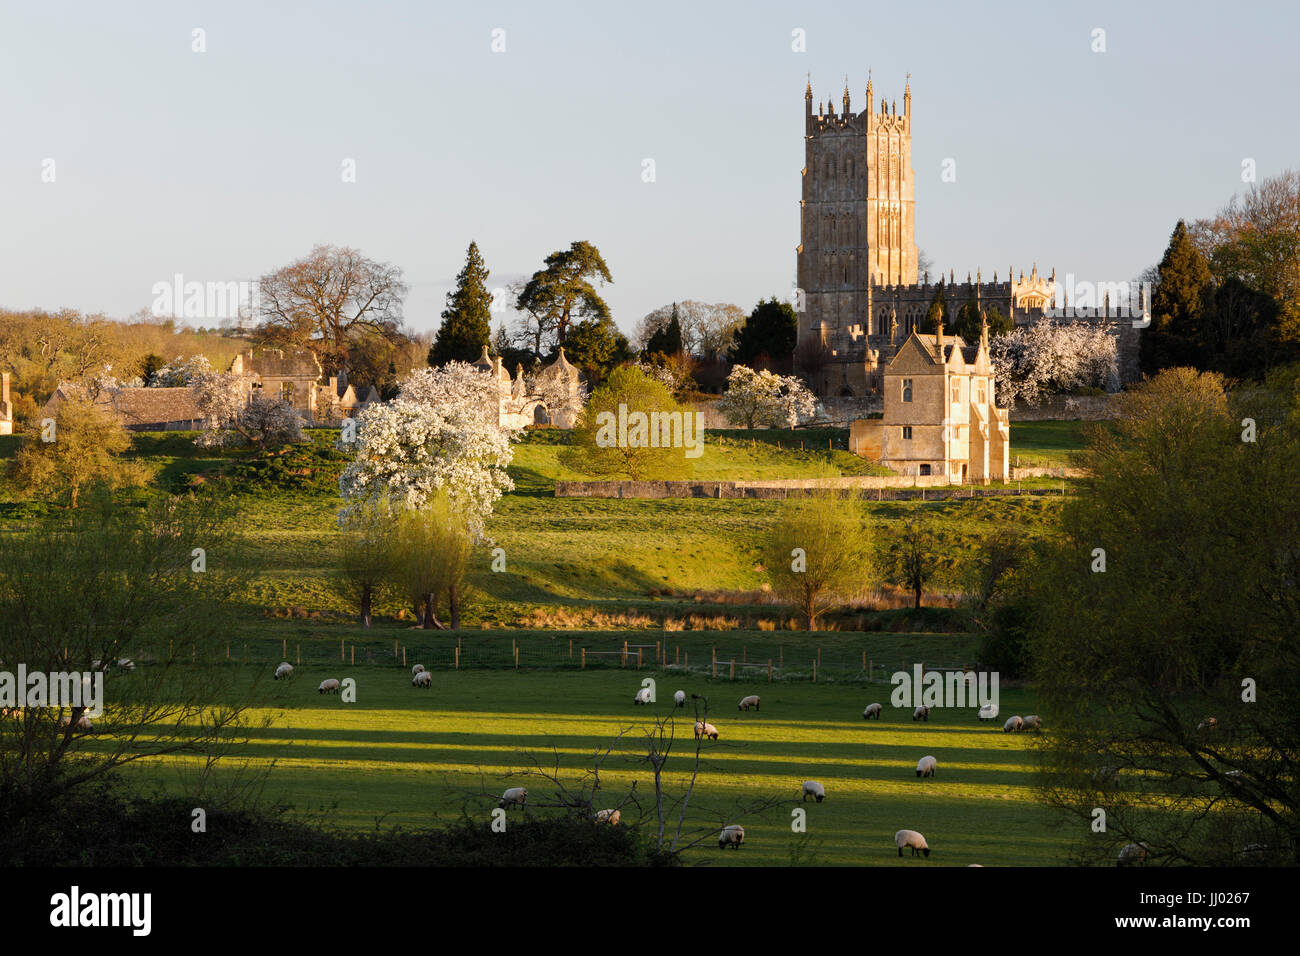 St James Church and grazing sheep, Chipping Campden, Cotswolds, Gloucestershire, England, United Kingdom, Europe - Stock Image